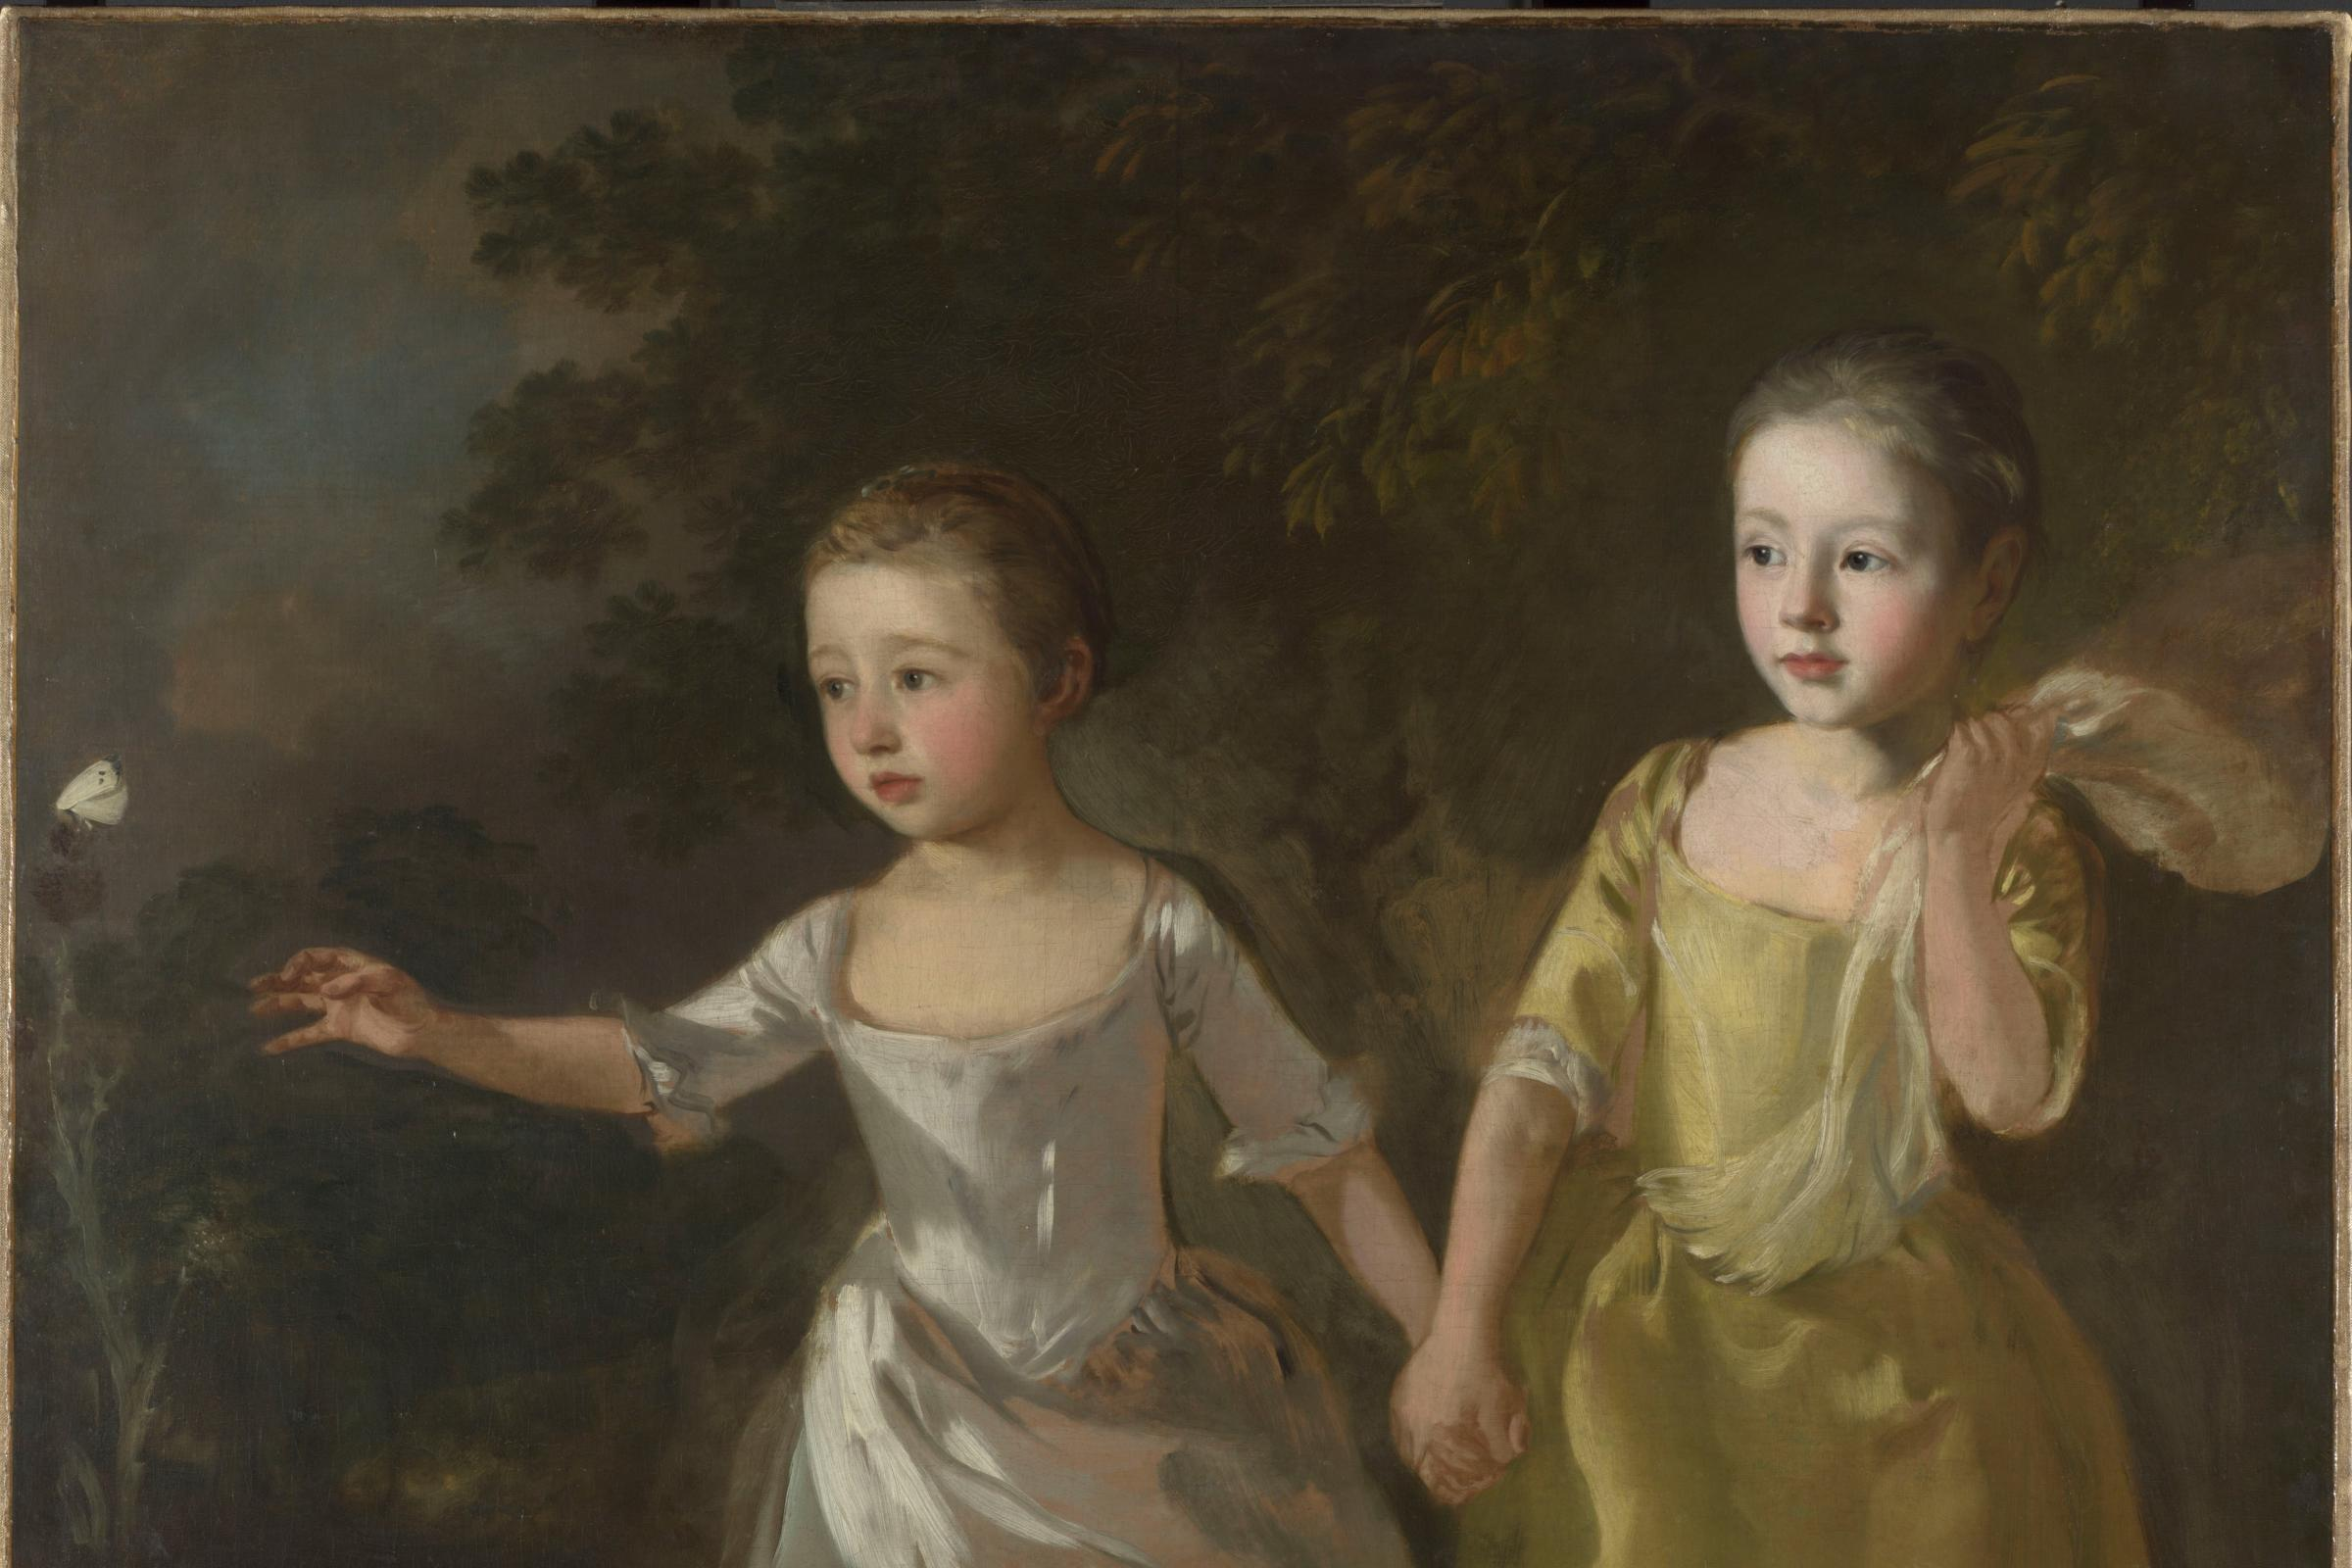 The Painter's Daughters Chasing A Butterfly by Thomas Gainsborough (The National Gallery)